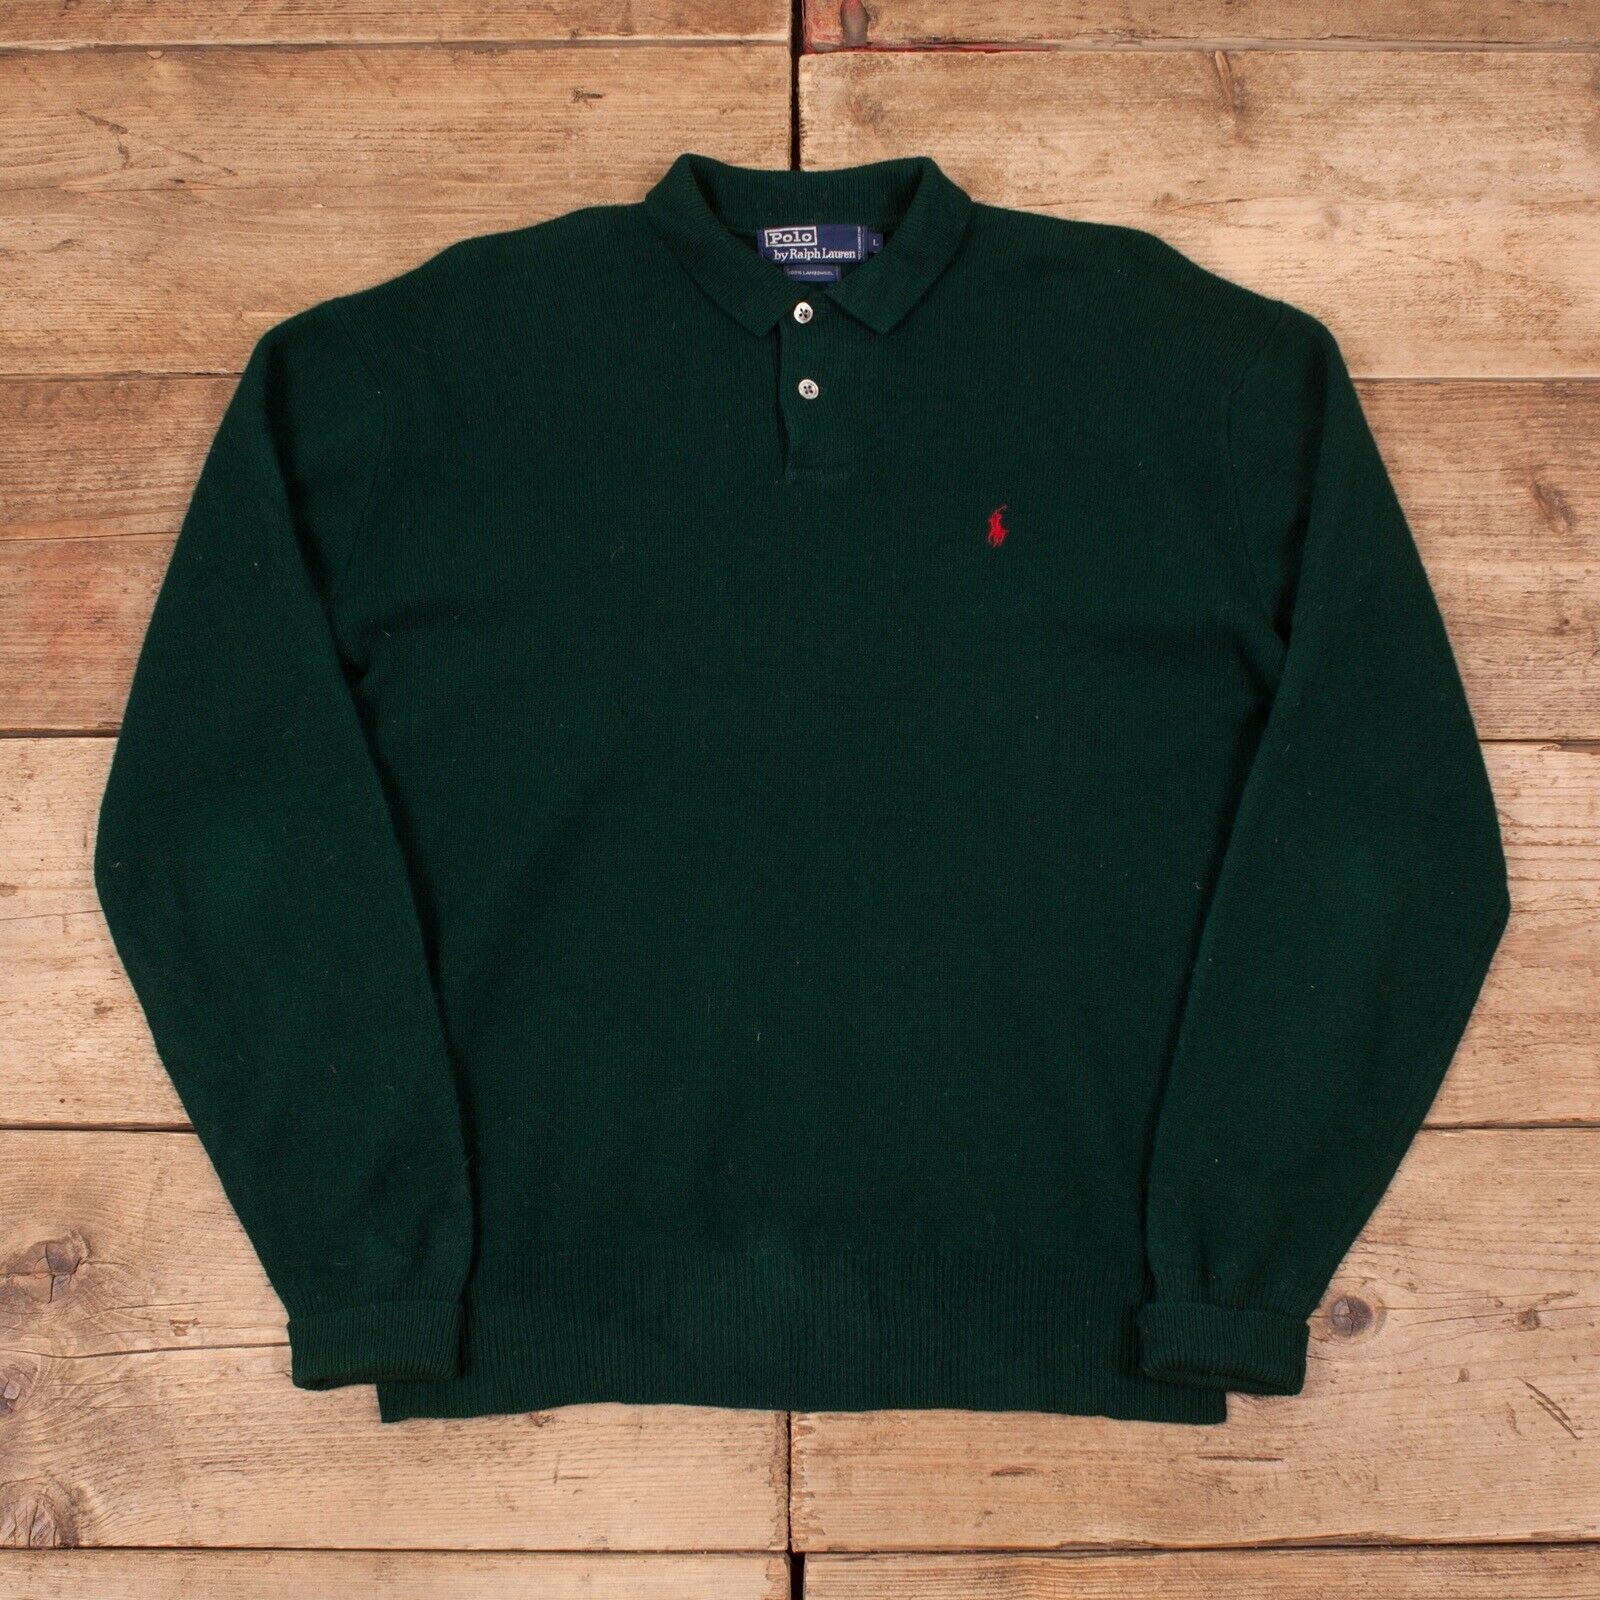 "Mens Vintage Polo Ralph Lauren Green Lambswool Sweatshirt Large 42"" R11756"